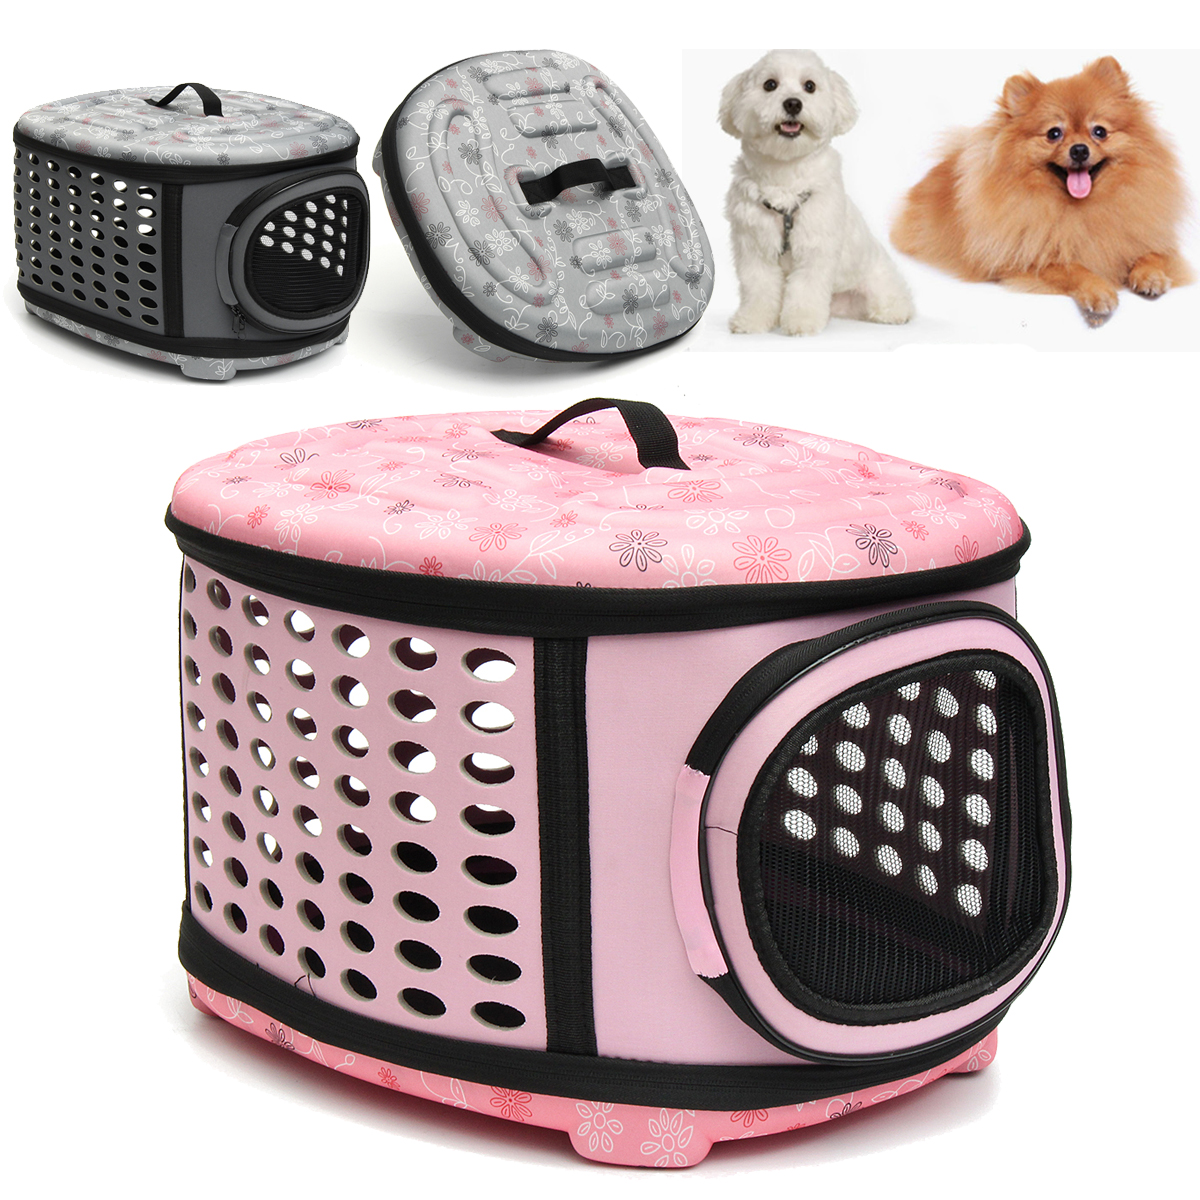 "18""x 15""x 13"" Outdoor Travel Pet Carrier Shoulder Bag Folding Soft and Breathable Small Dogs and Cats Cages House"